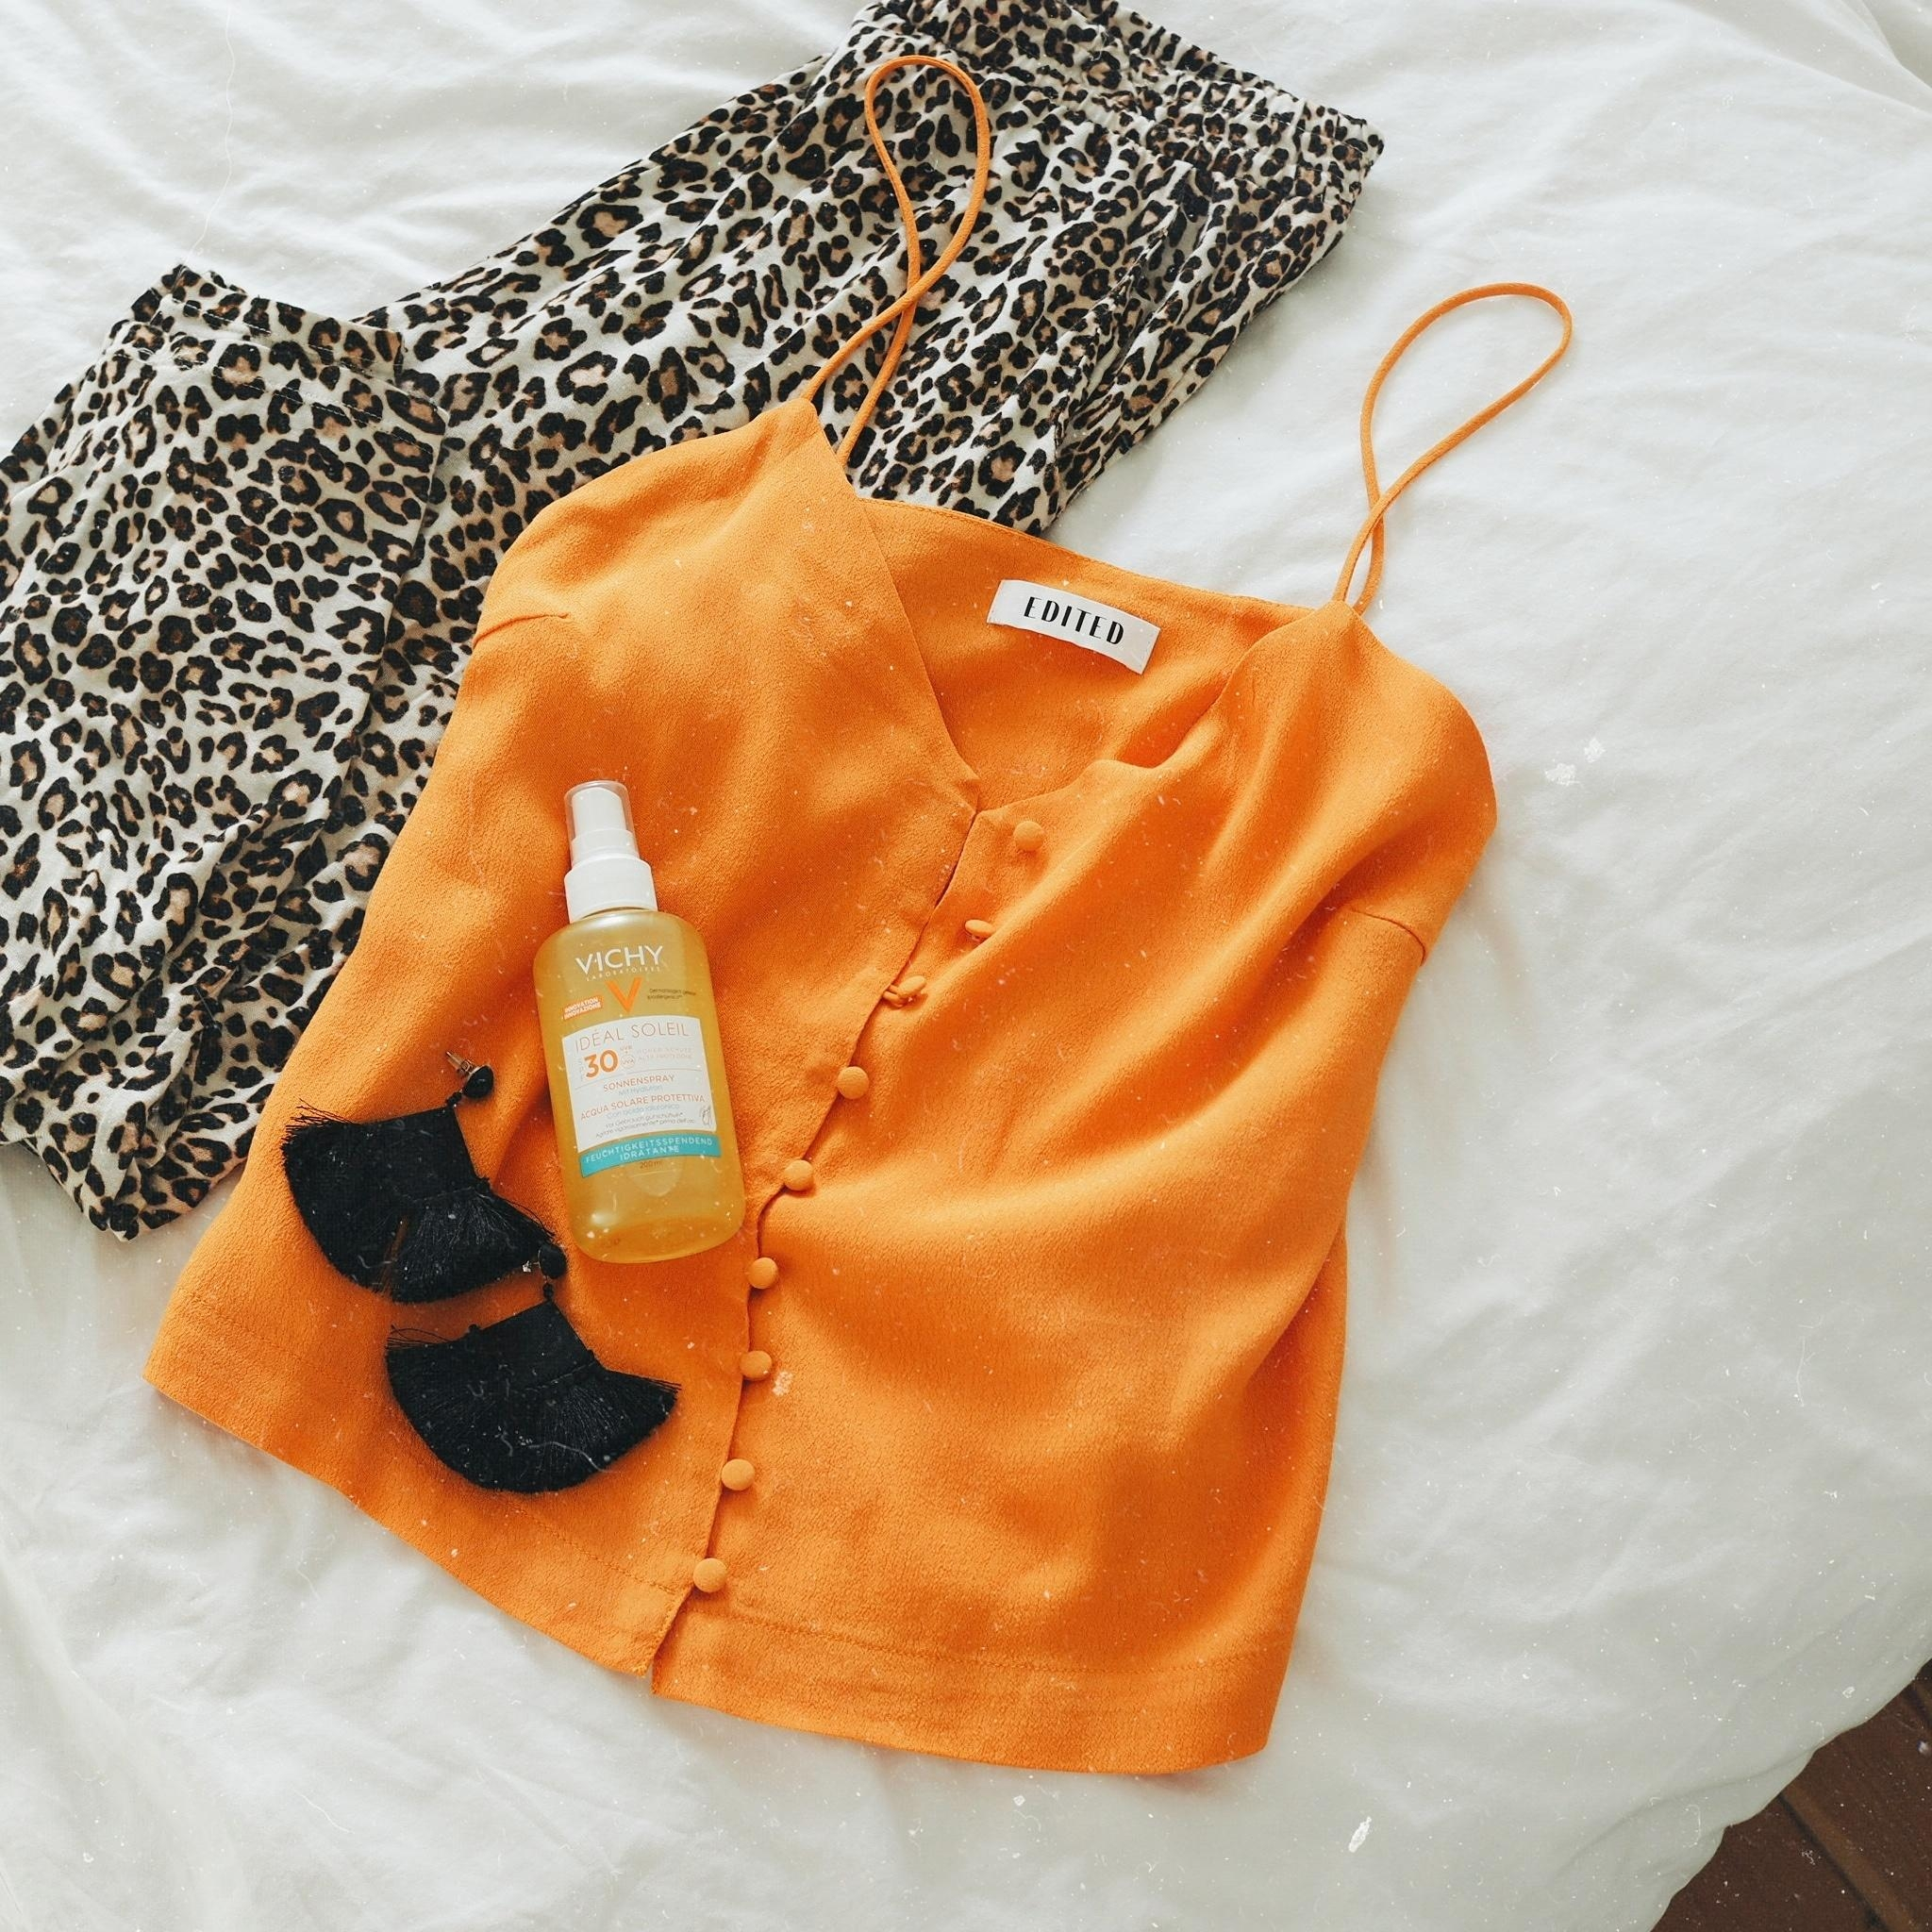 Packing for vacation ☀️ #sonnencreme #vichy #urlaub #beauty #leolove #fashion #orange